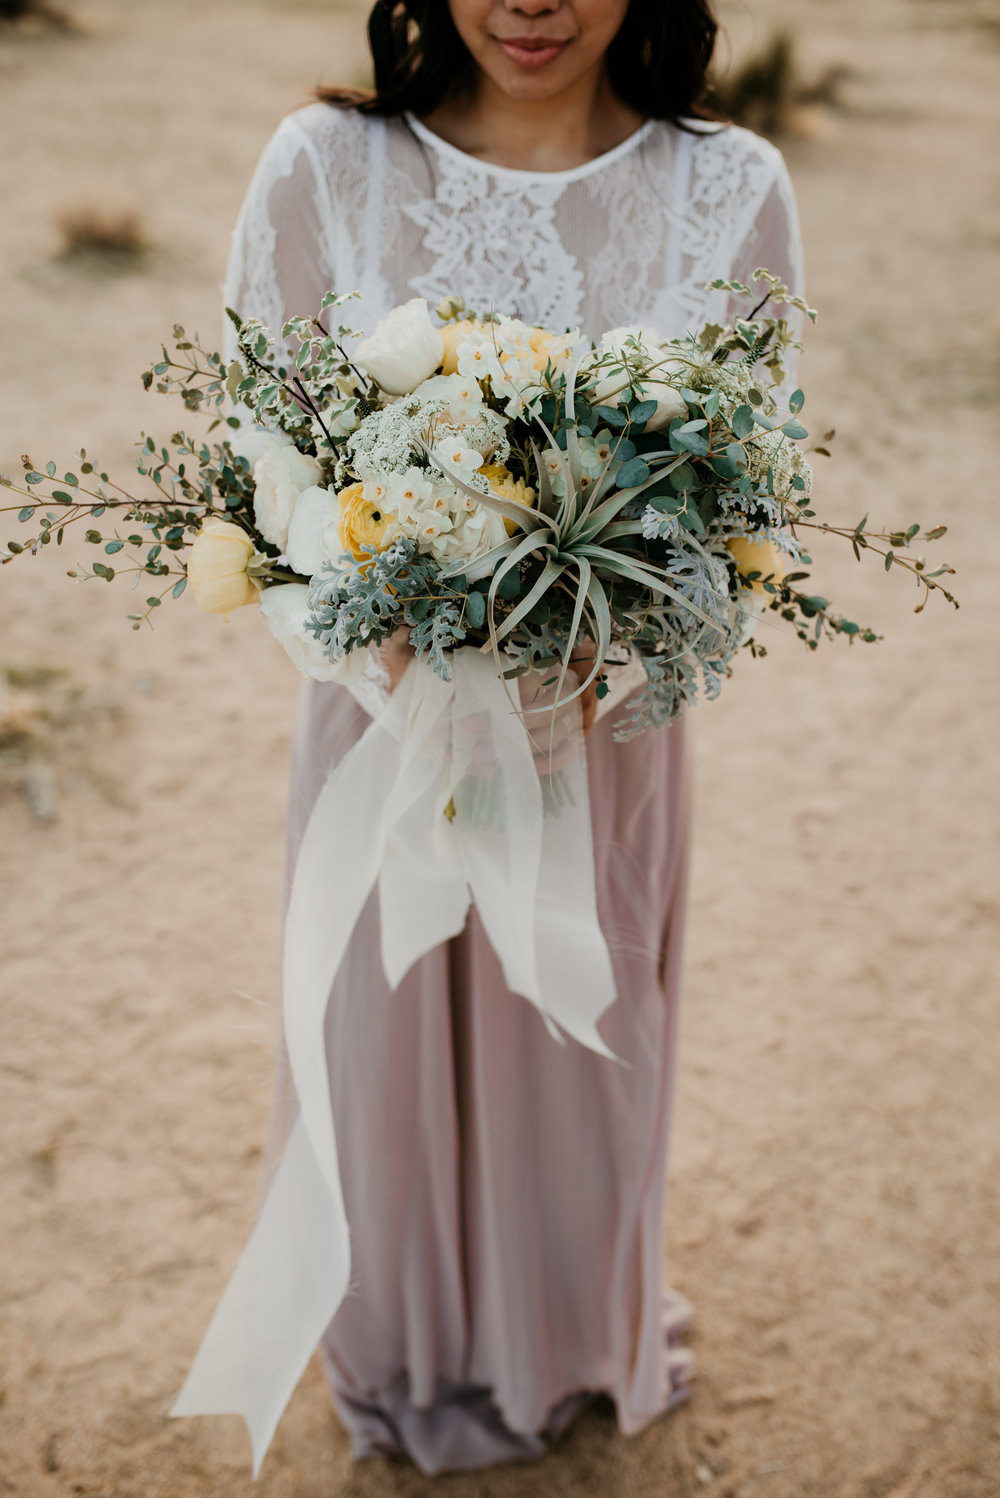 Joshua Tree, Joshua Tree wedding, Joshua tree elopement, desert elopement, airplant bouquet, 10 year anniversary, anniversary photo shoot, daffodil bouquet, yellow bridal bouquet